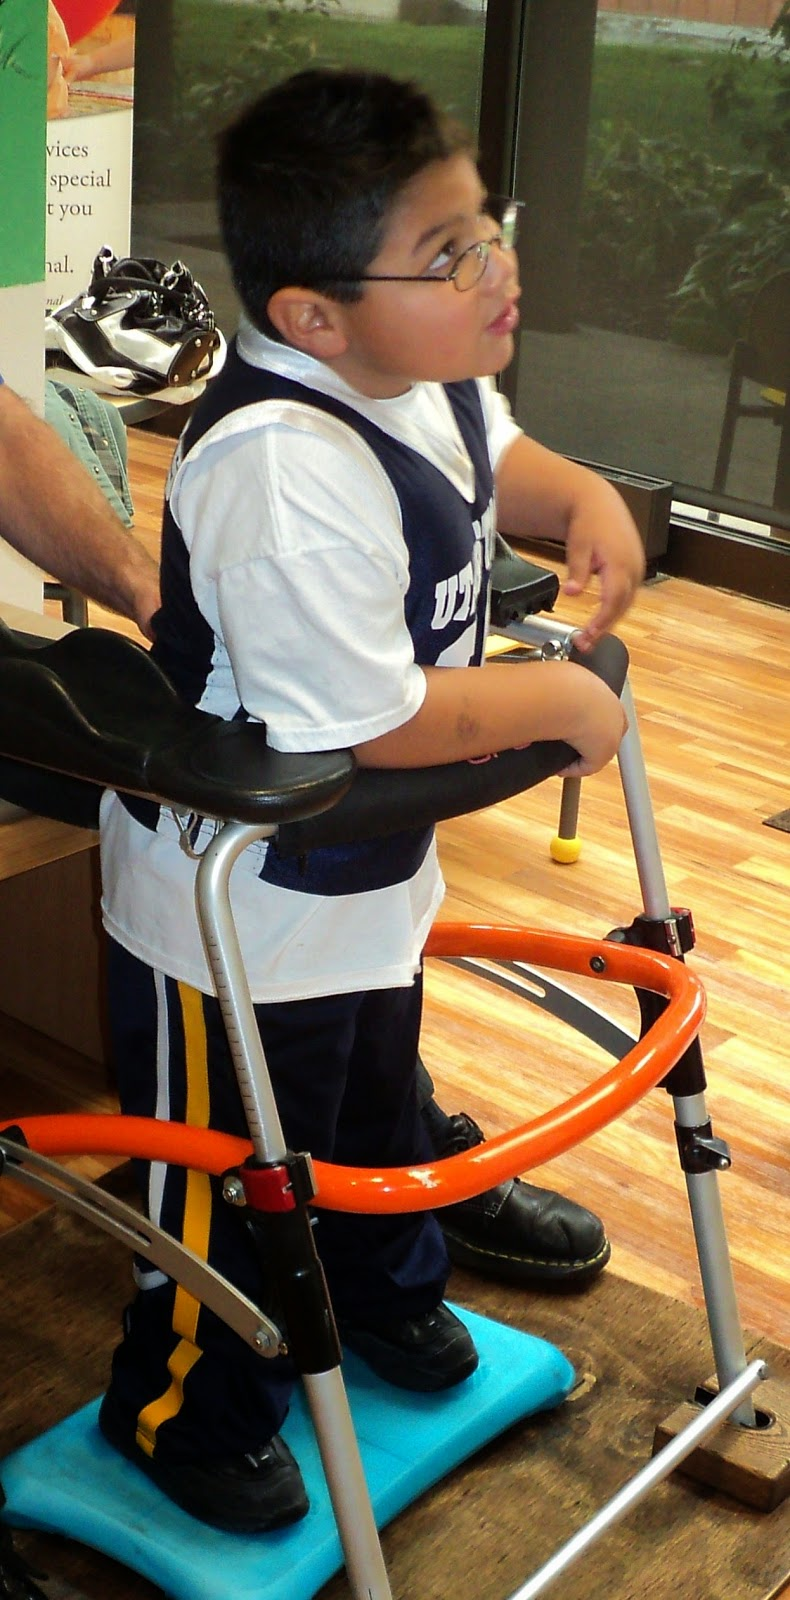 Six-year-old Dillon using a stand during therapy built at the AT lab.